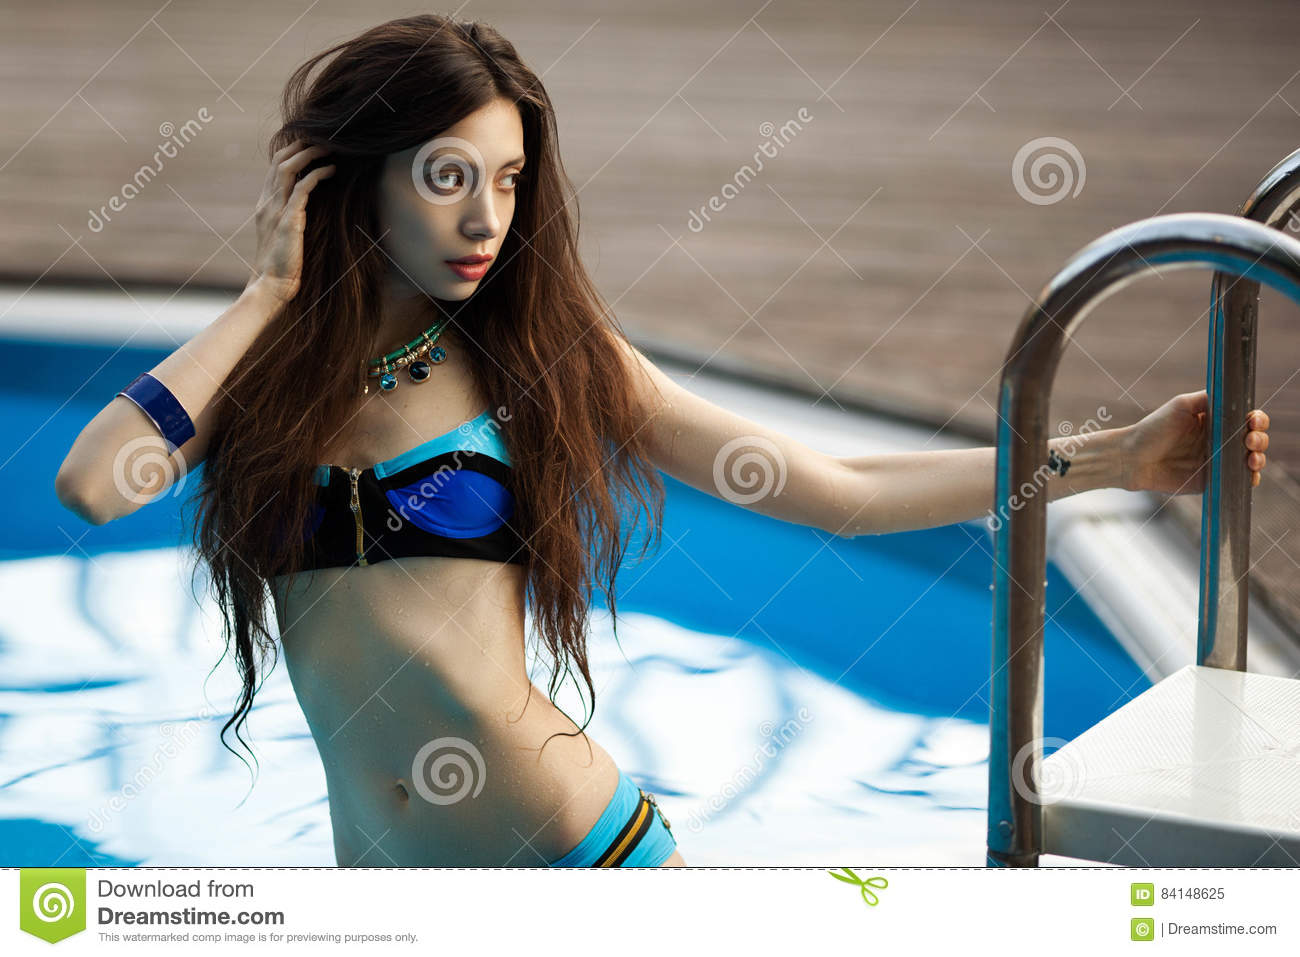 Girl in a bathing suit on the background of the pool